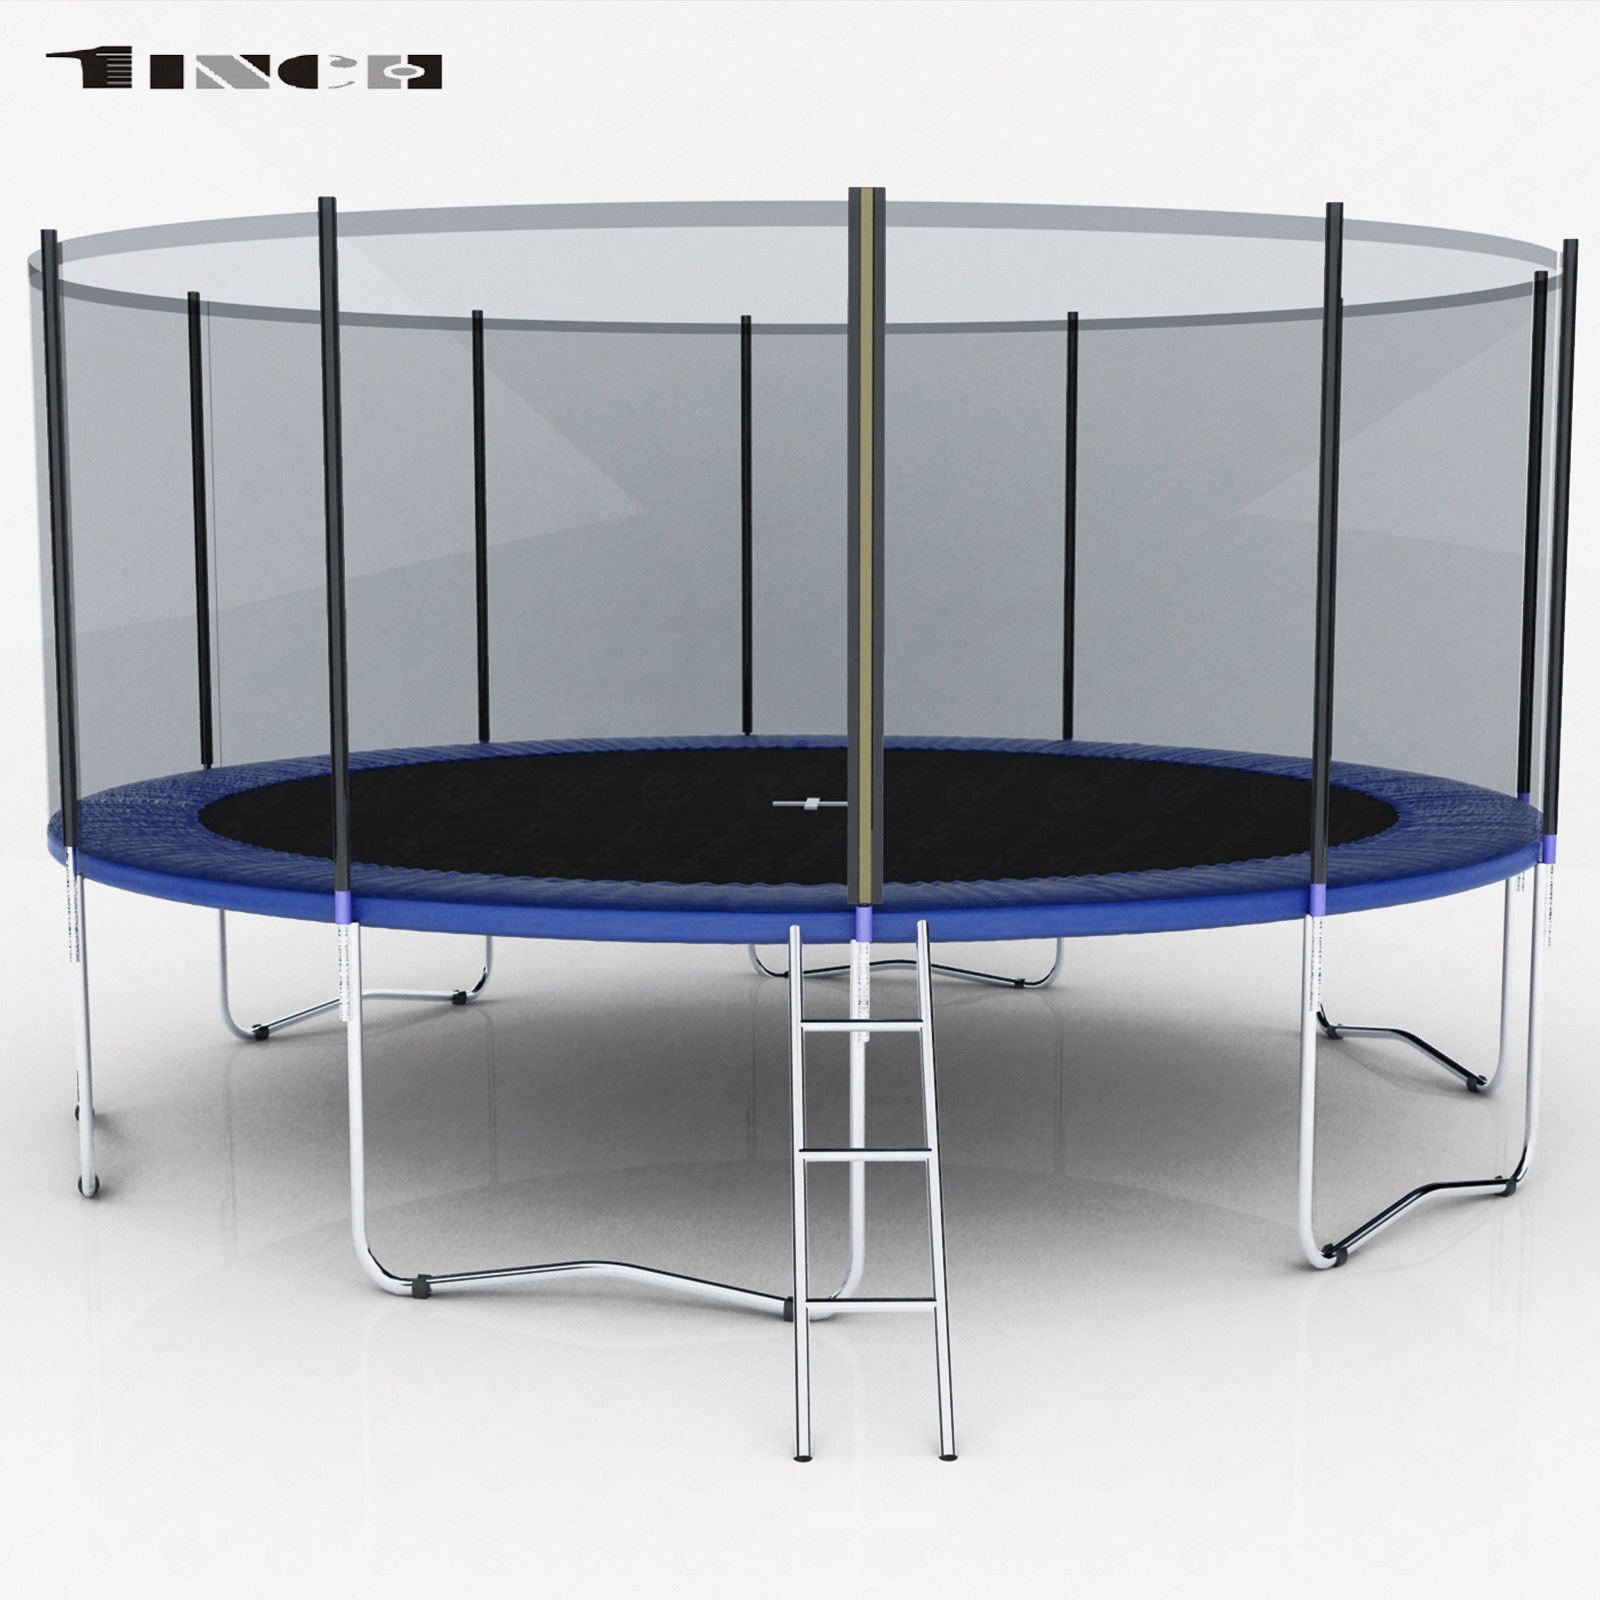 15FT Round Trampoline w/Enclosure Bounce Jump Safety Net Spring Pad &Ladder Blue With Ebook